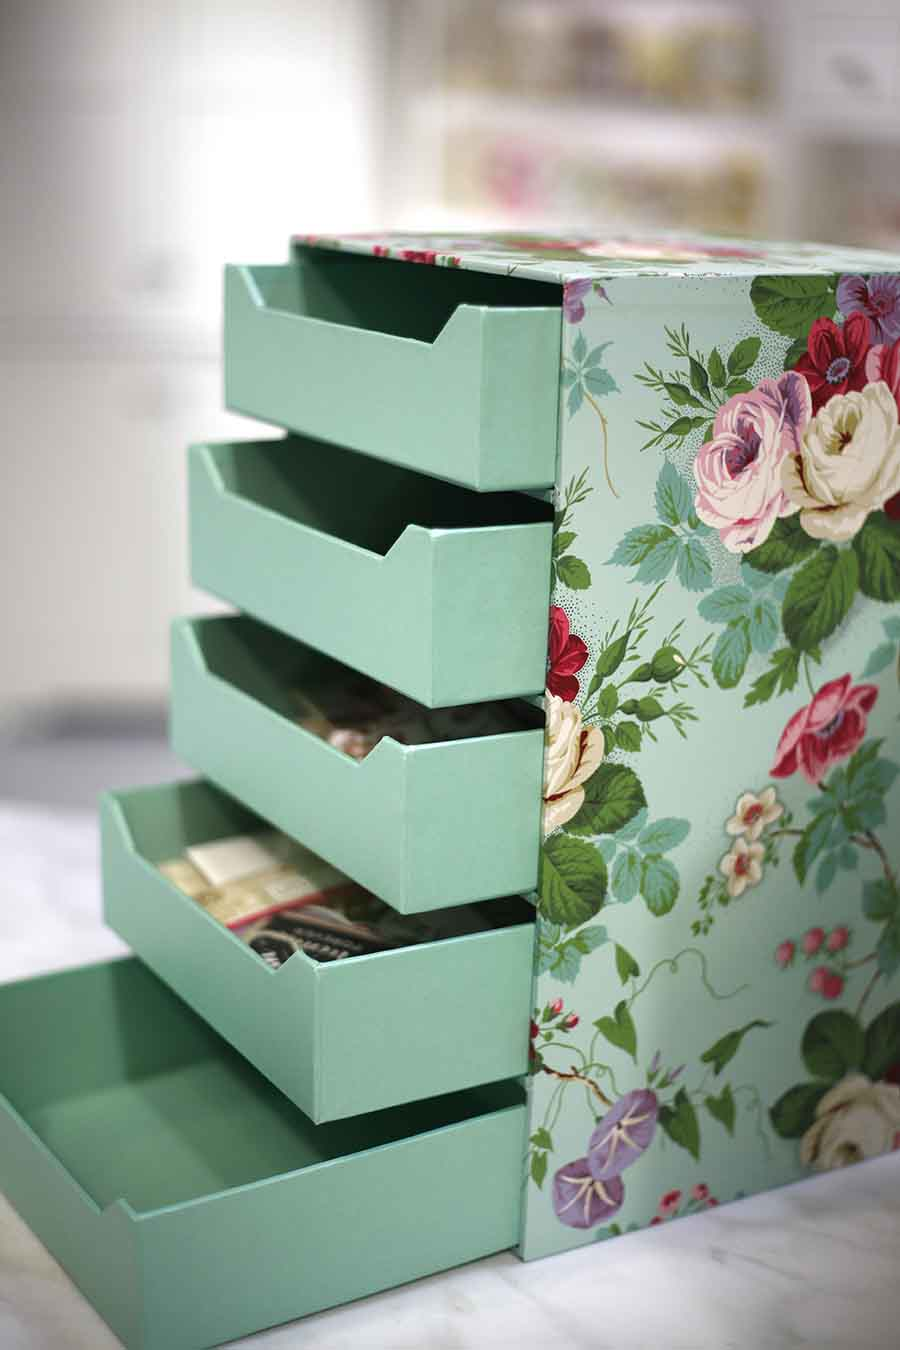 9a2684e91 The 5 patterns available also coordinate with the new Craft Room Storage  Boxes.